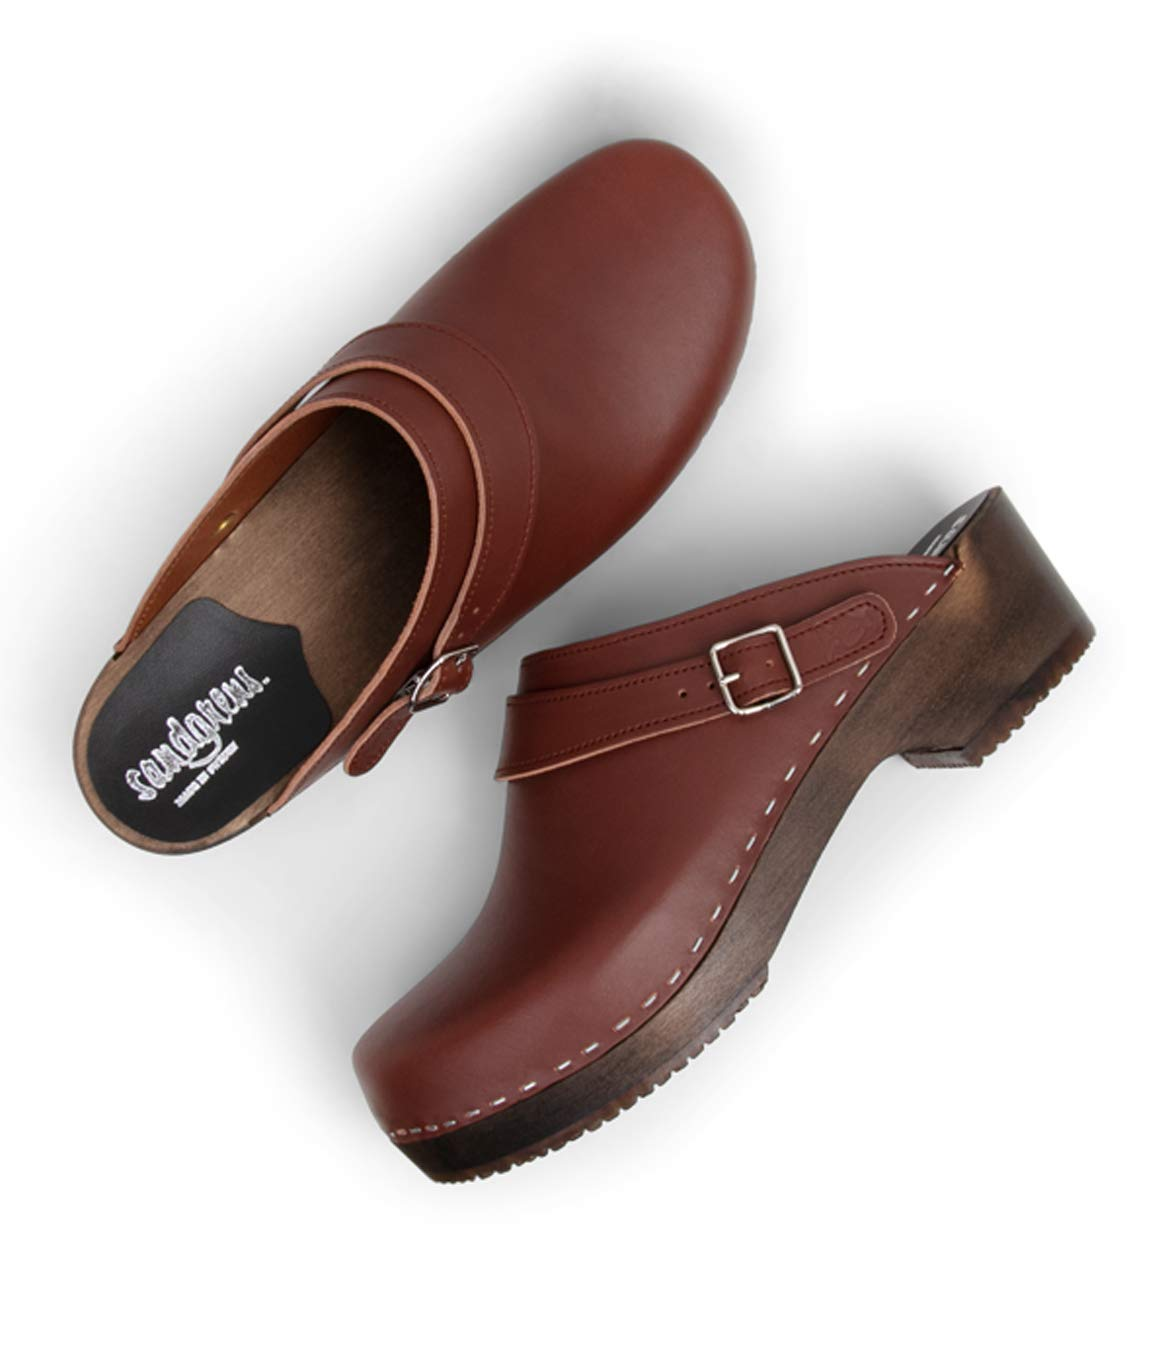 Sandgrens Swedish Wooden Clogs for Men with Leather Upper | Nybro (Dark Base) Cognac, EU 44 by Sandgrens (Image #3)